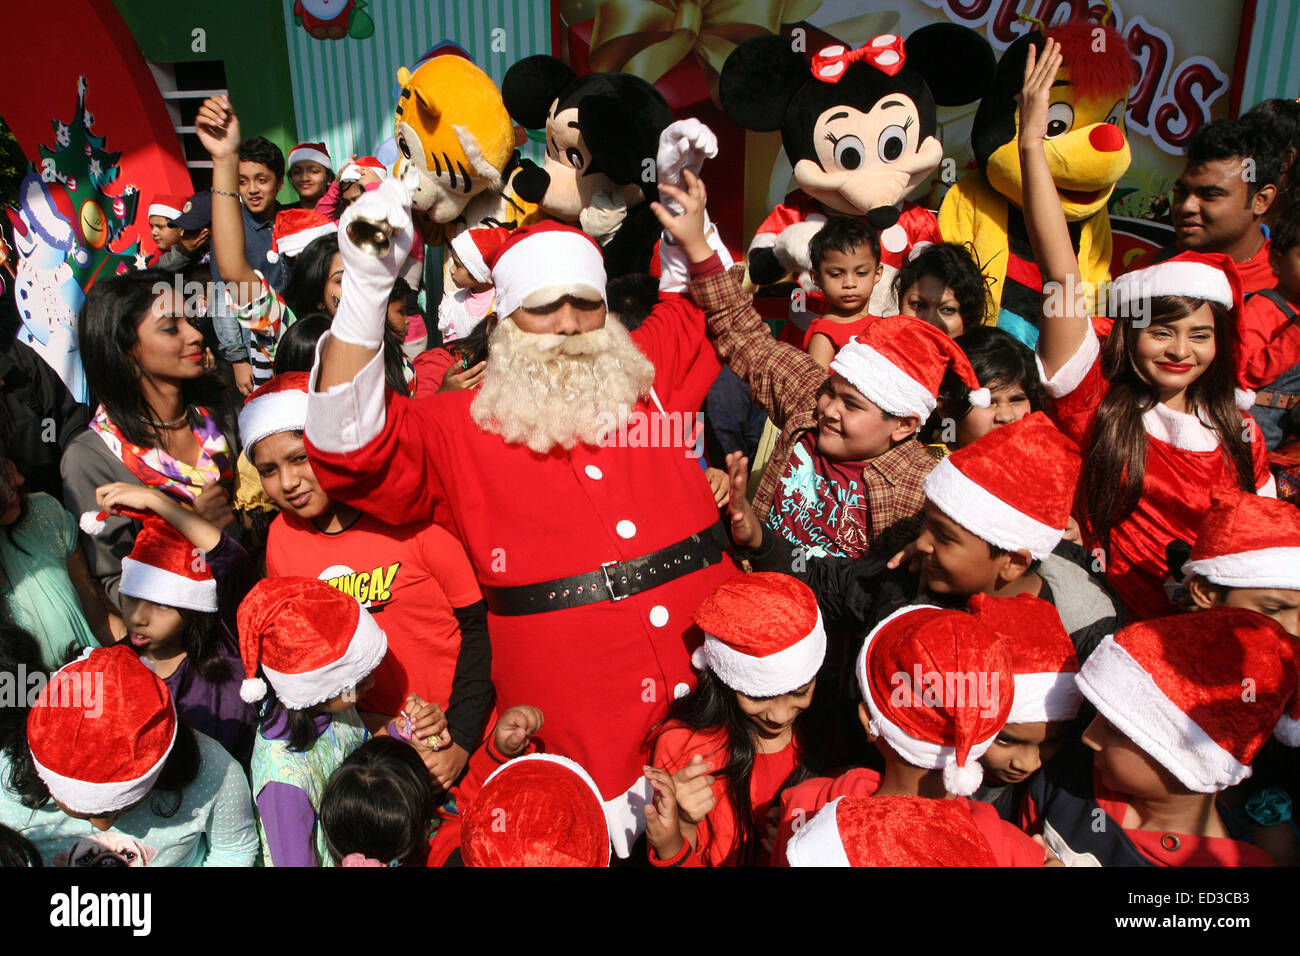 A Christmas Party.Santa Claus Poses With Bangladeshi Children For Photographs